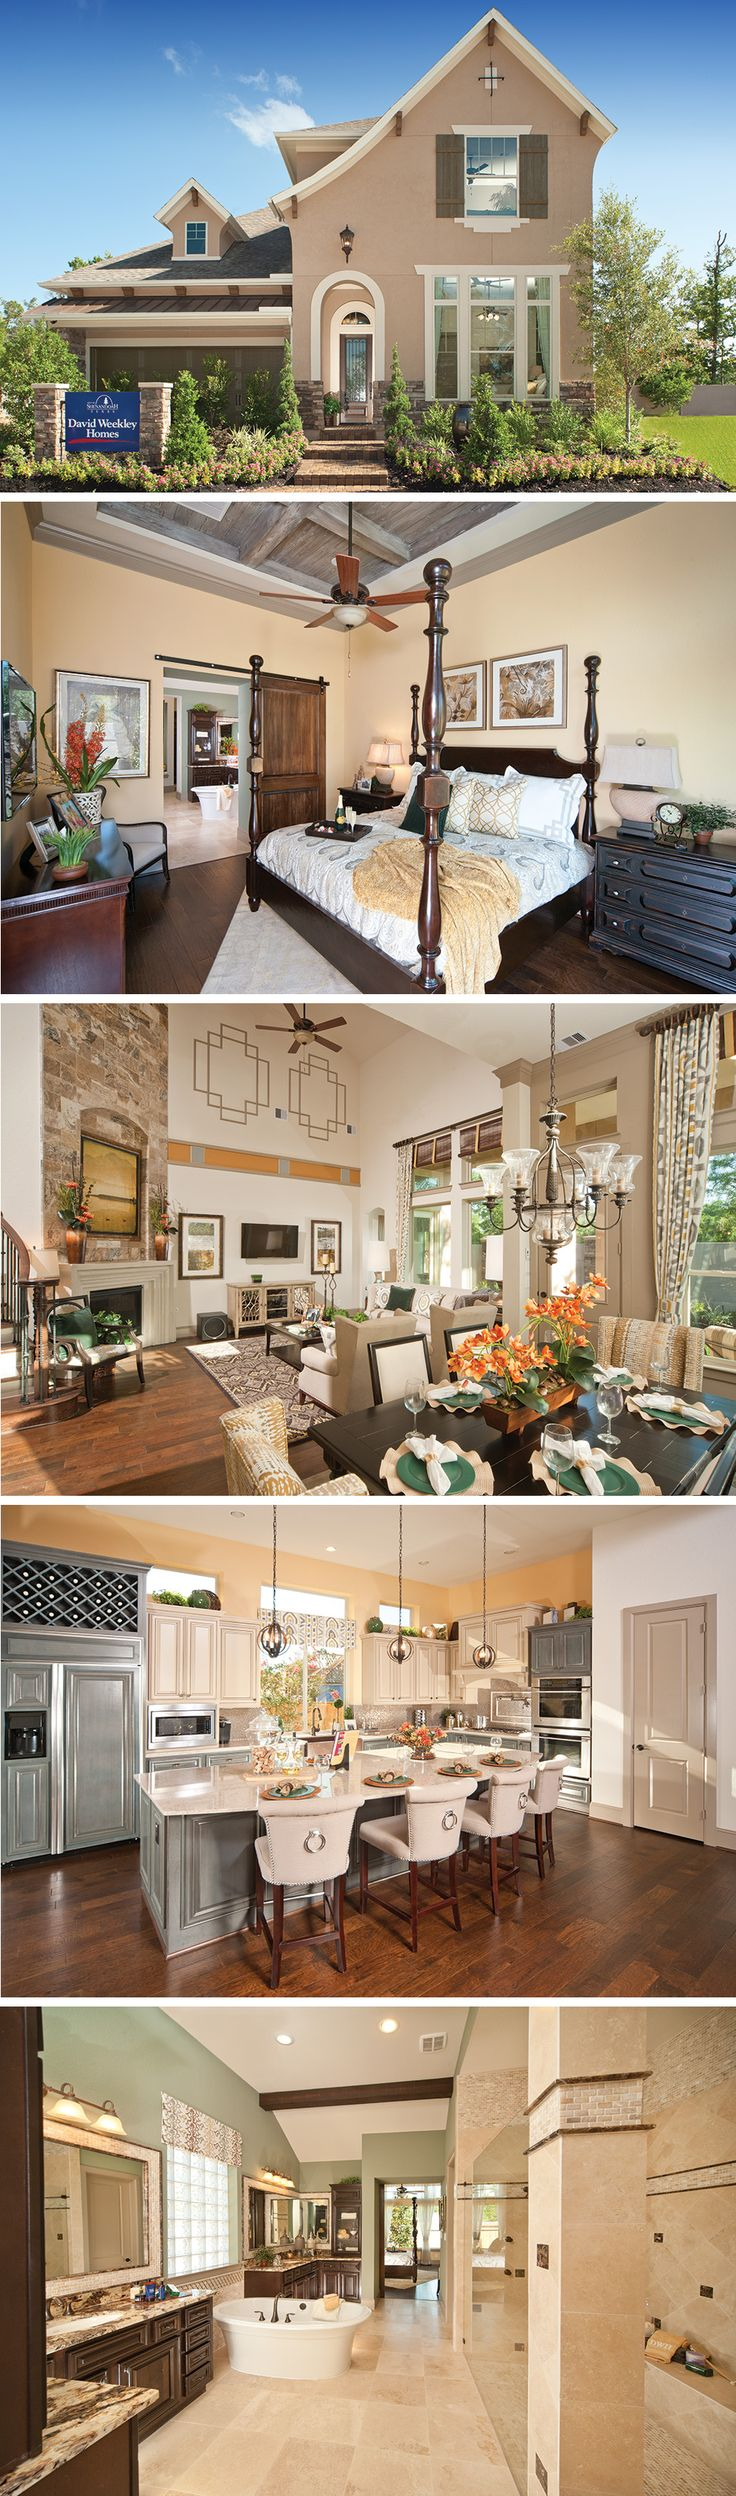 The Emory by David Weekley Homes in Grogan's Mill is a 4 bedroom, 4 bathroom home that features an open kitchen and family layout, a classic spiral staircase and a private covered porch.